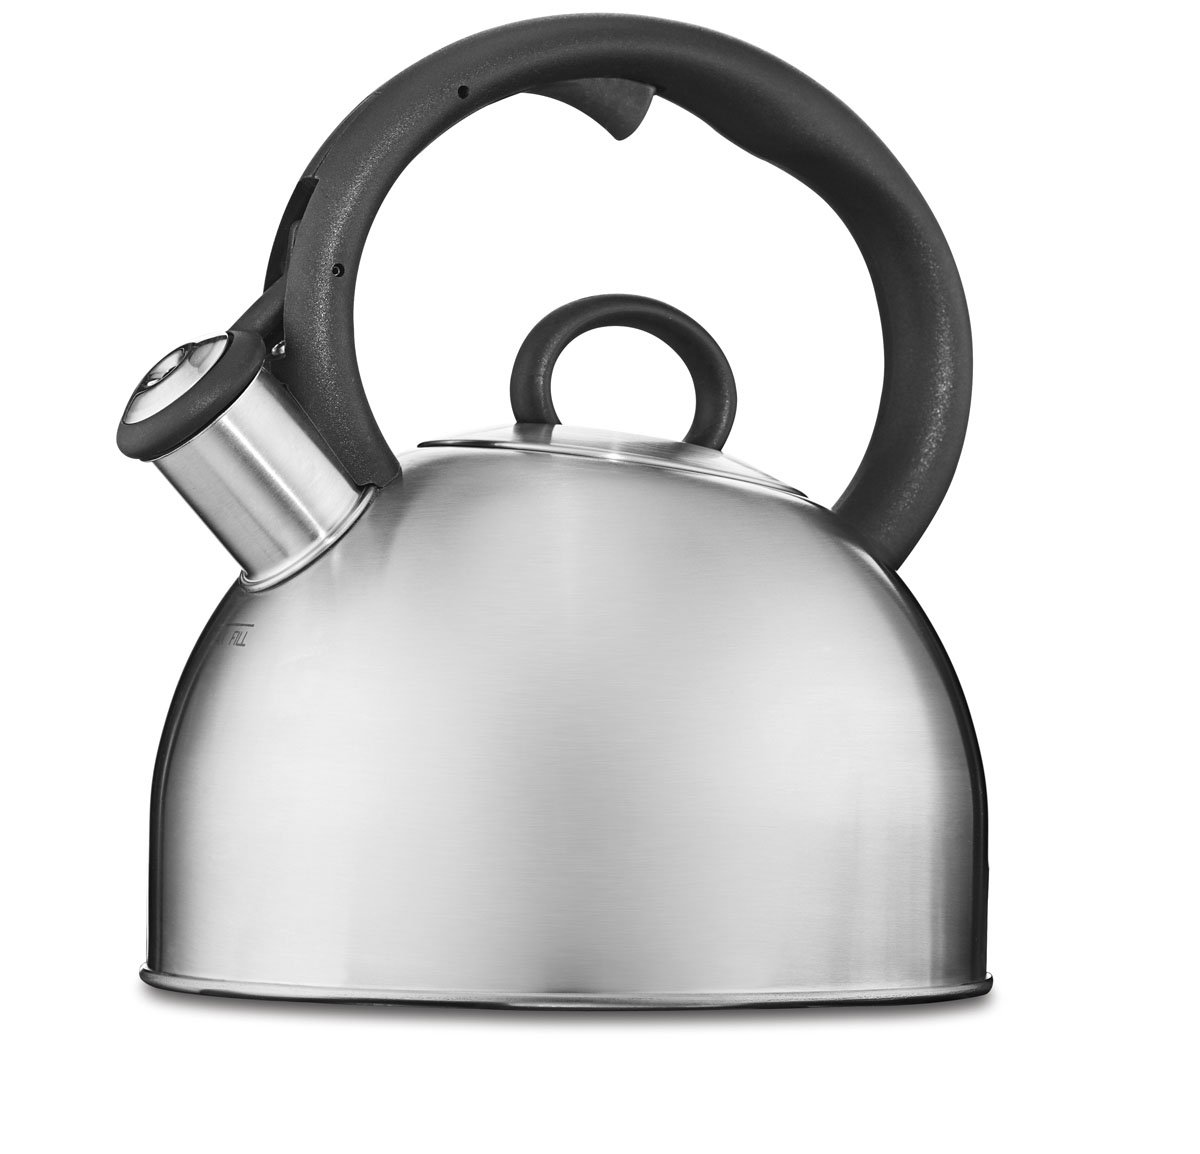 Cuisinart CTK-SS17 Aura Stainless Steel Stovetop Teakettle, 2QT. by Cuisinart (Image #3)